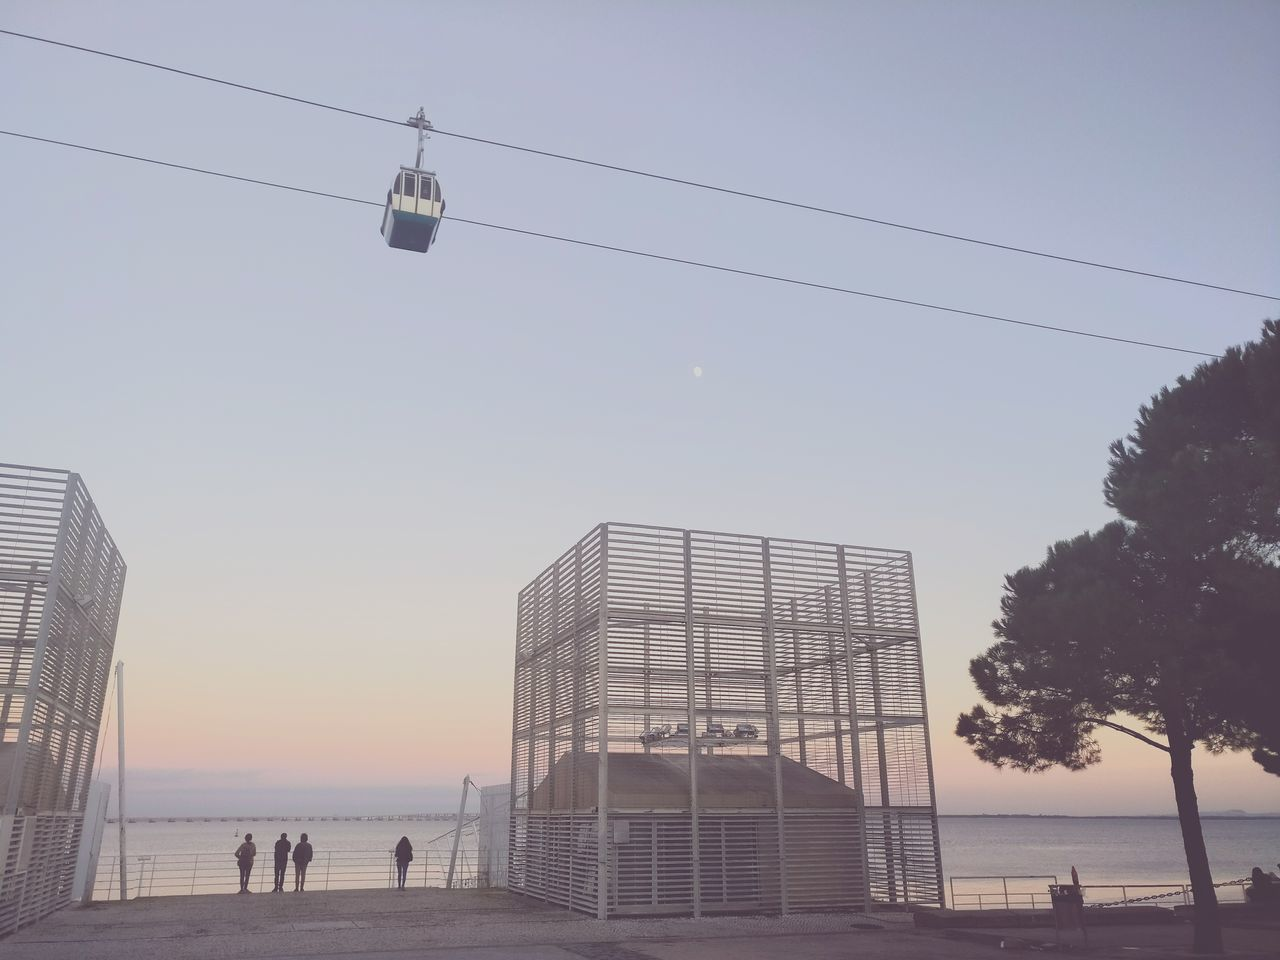 People looking at the sea and enjoying the sunset view Outdoors People Watching People People And Places View Sunset Sky Day Cable Car Beautiful Beautiful Nature First Eyeem Photo